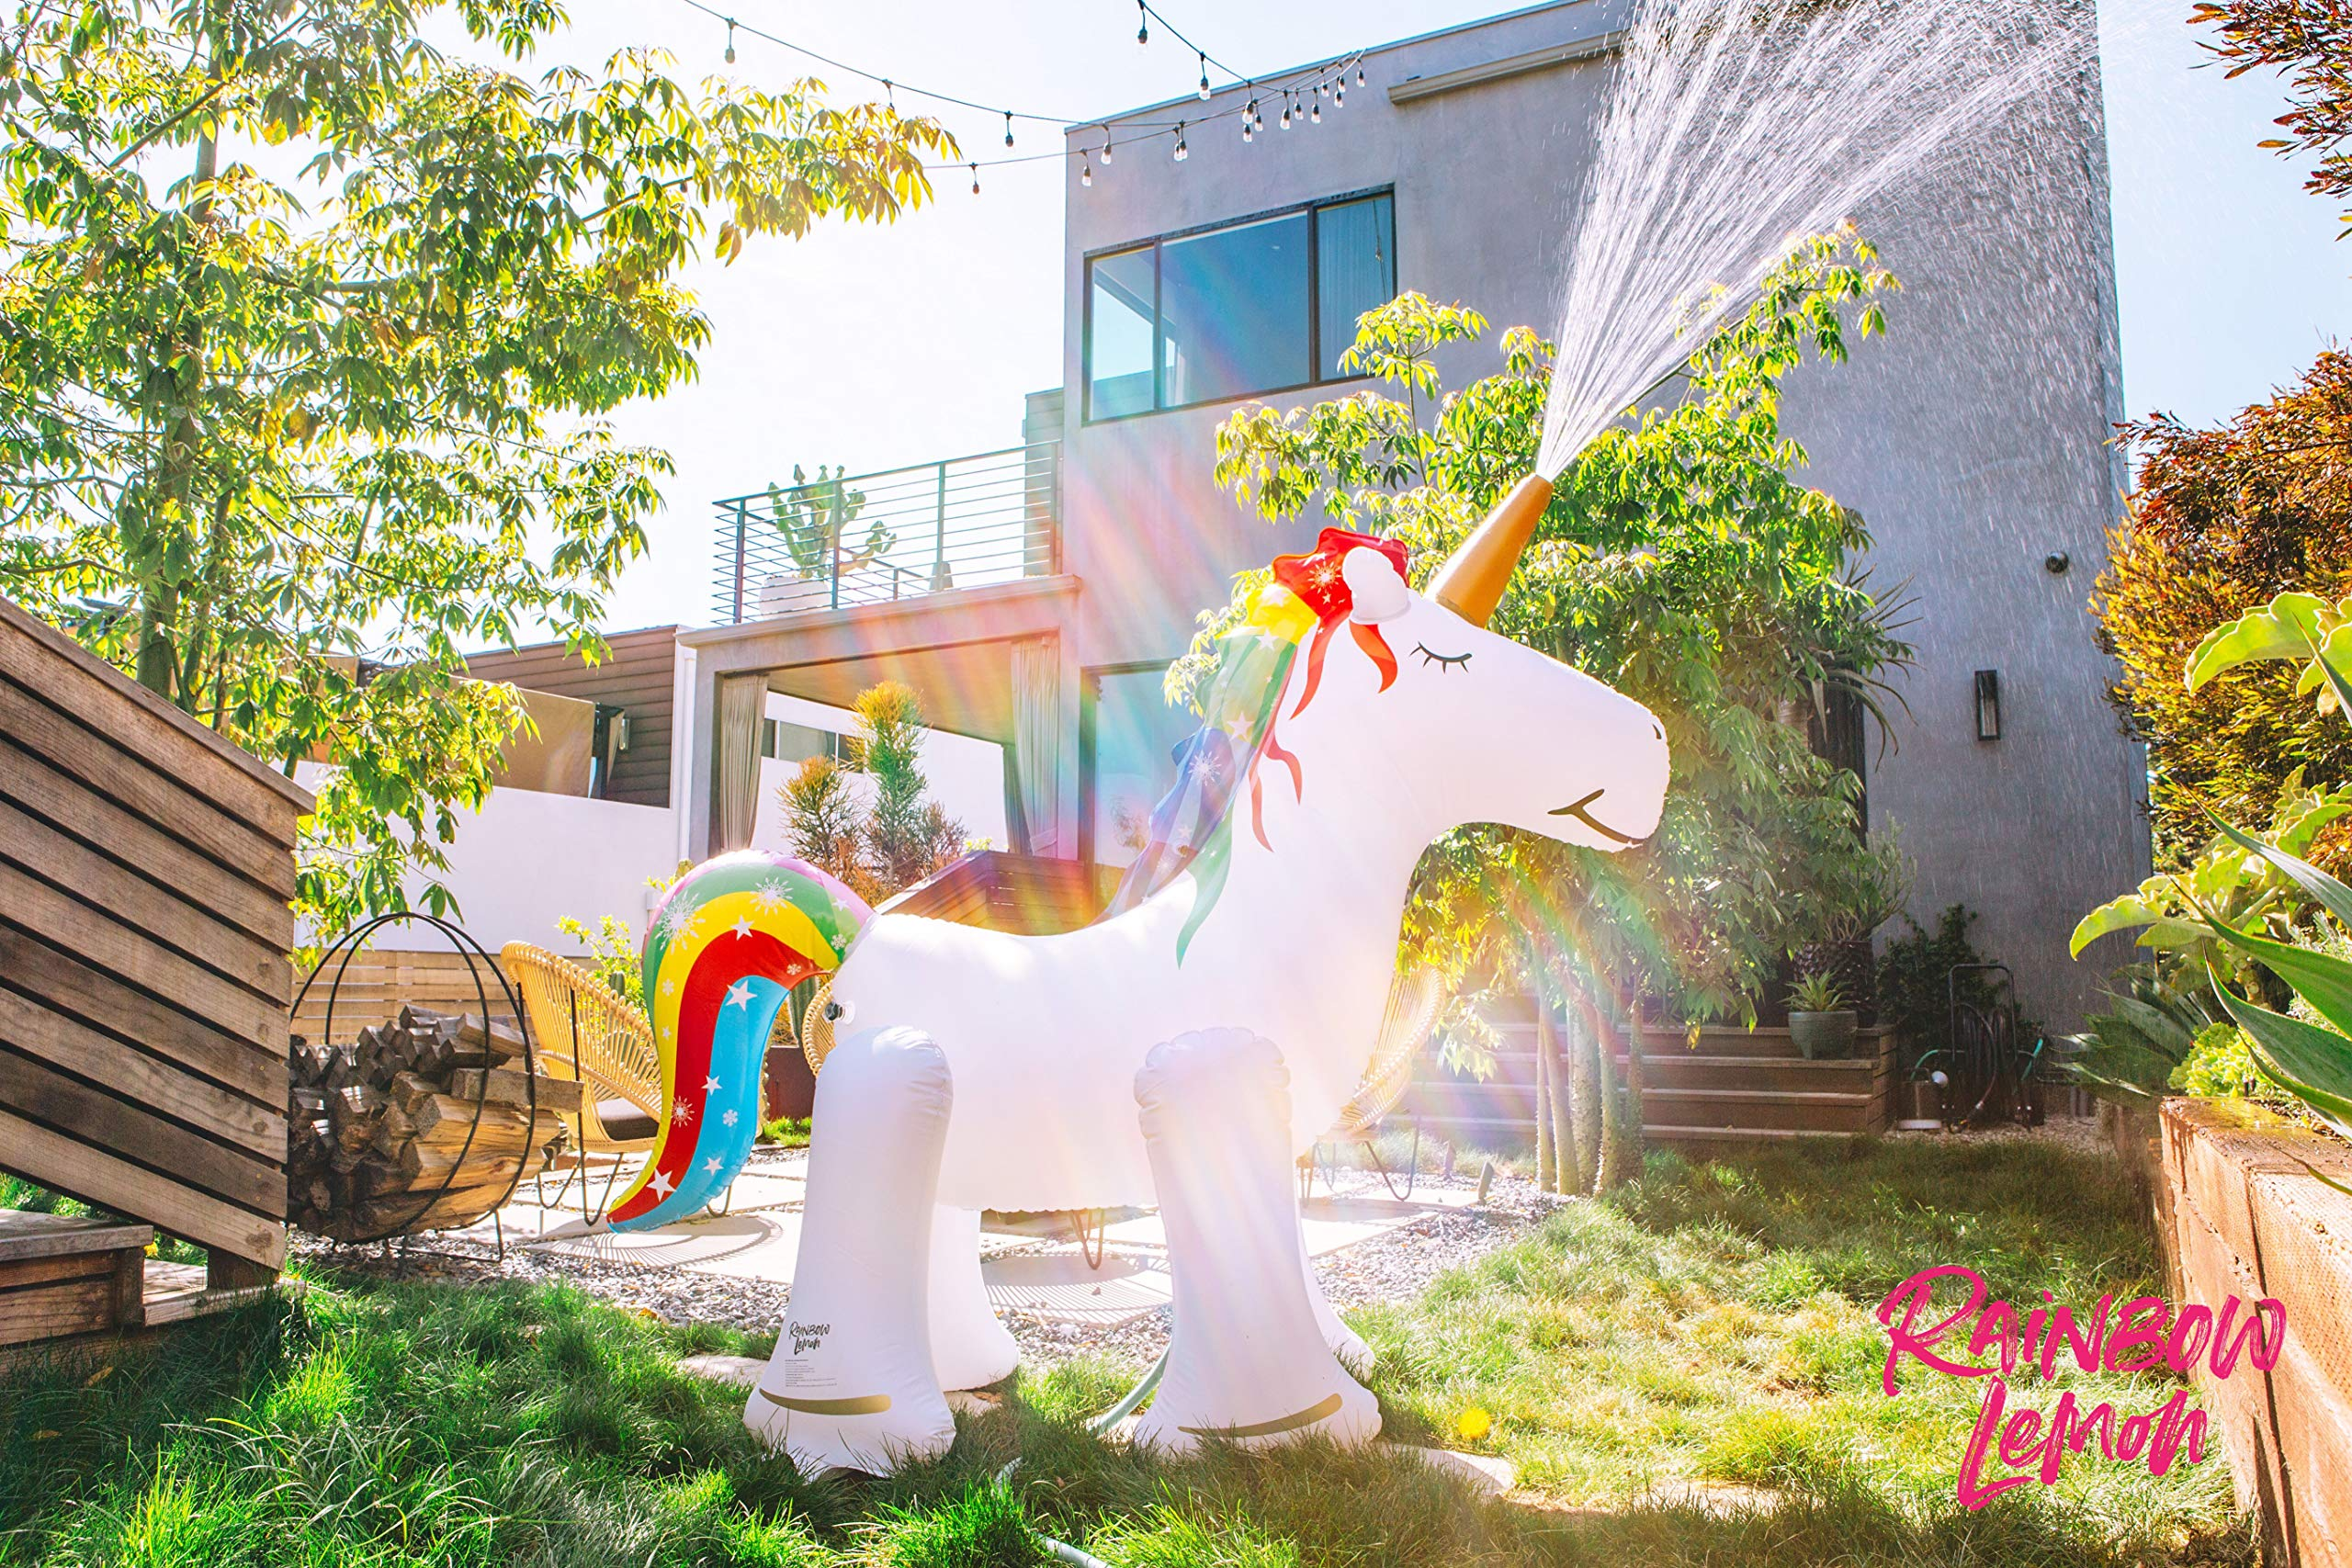 Rainbow Lemon Giant Inflatable Unicorn Sprinkler 10